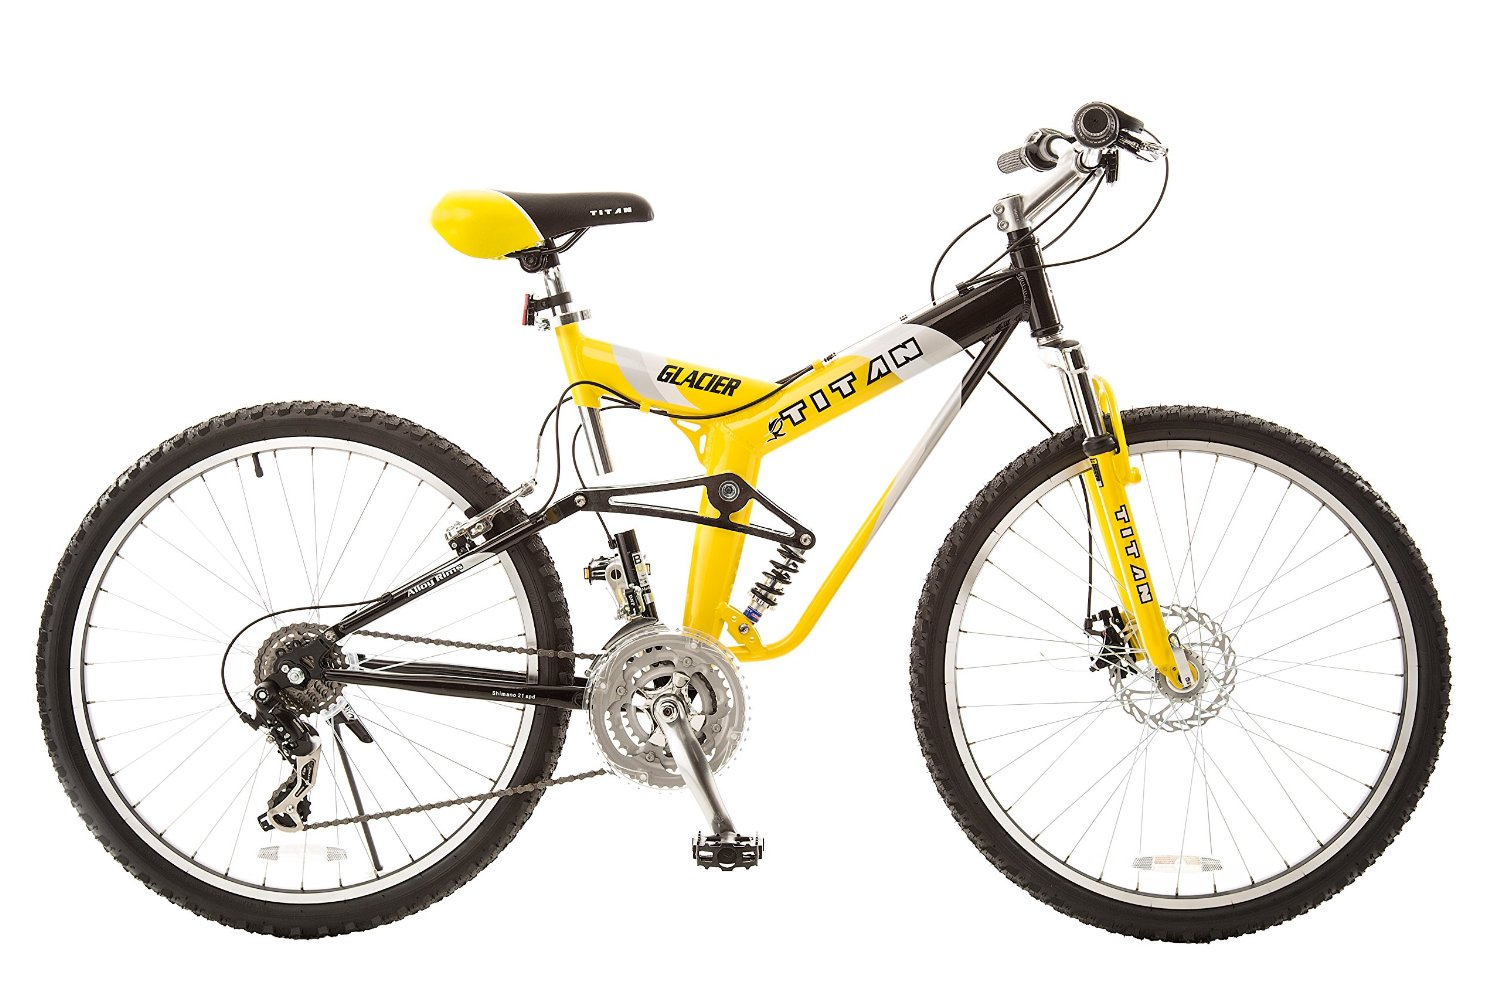 The Best Mountain Bikes Under $500